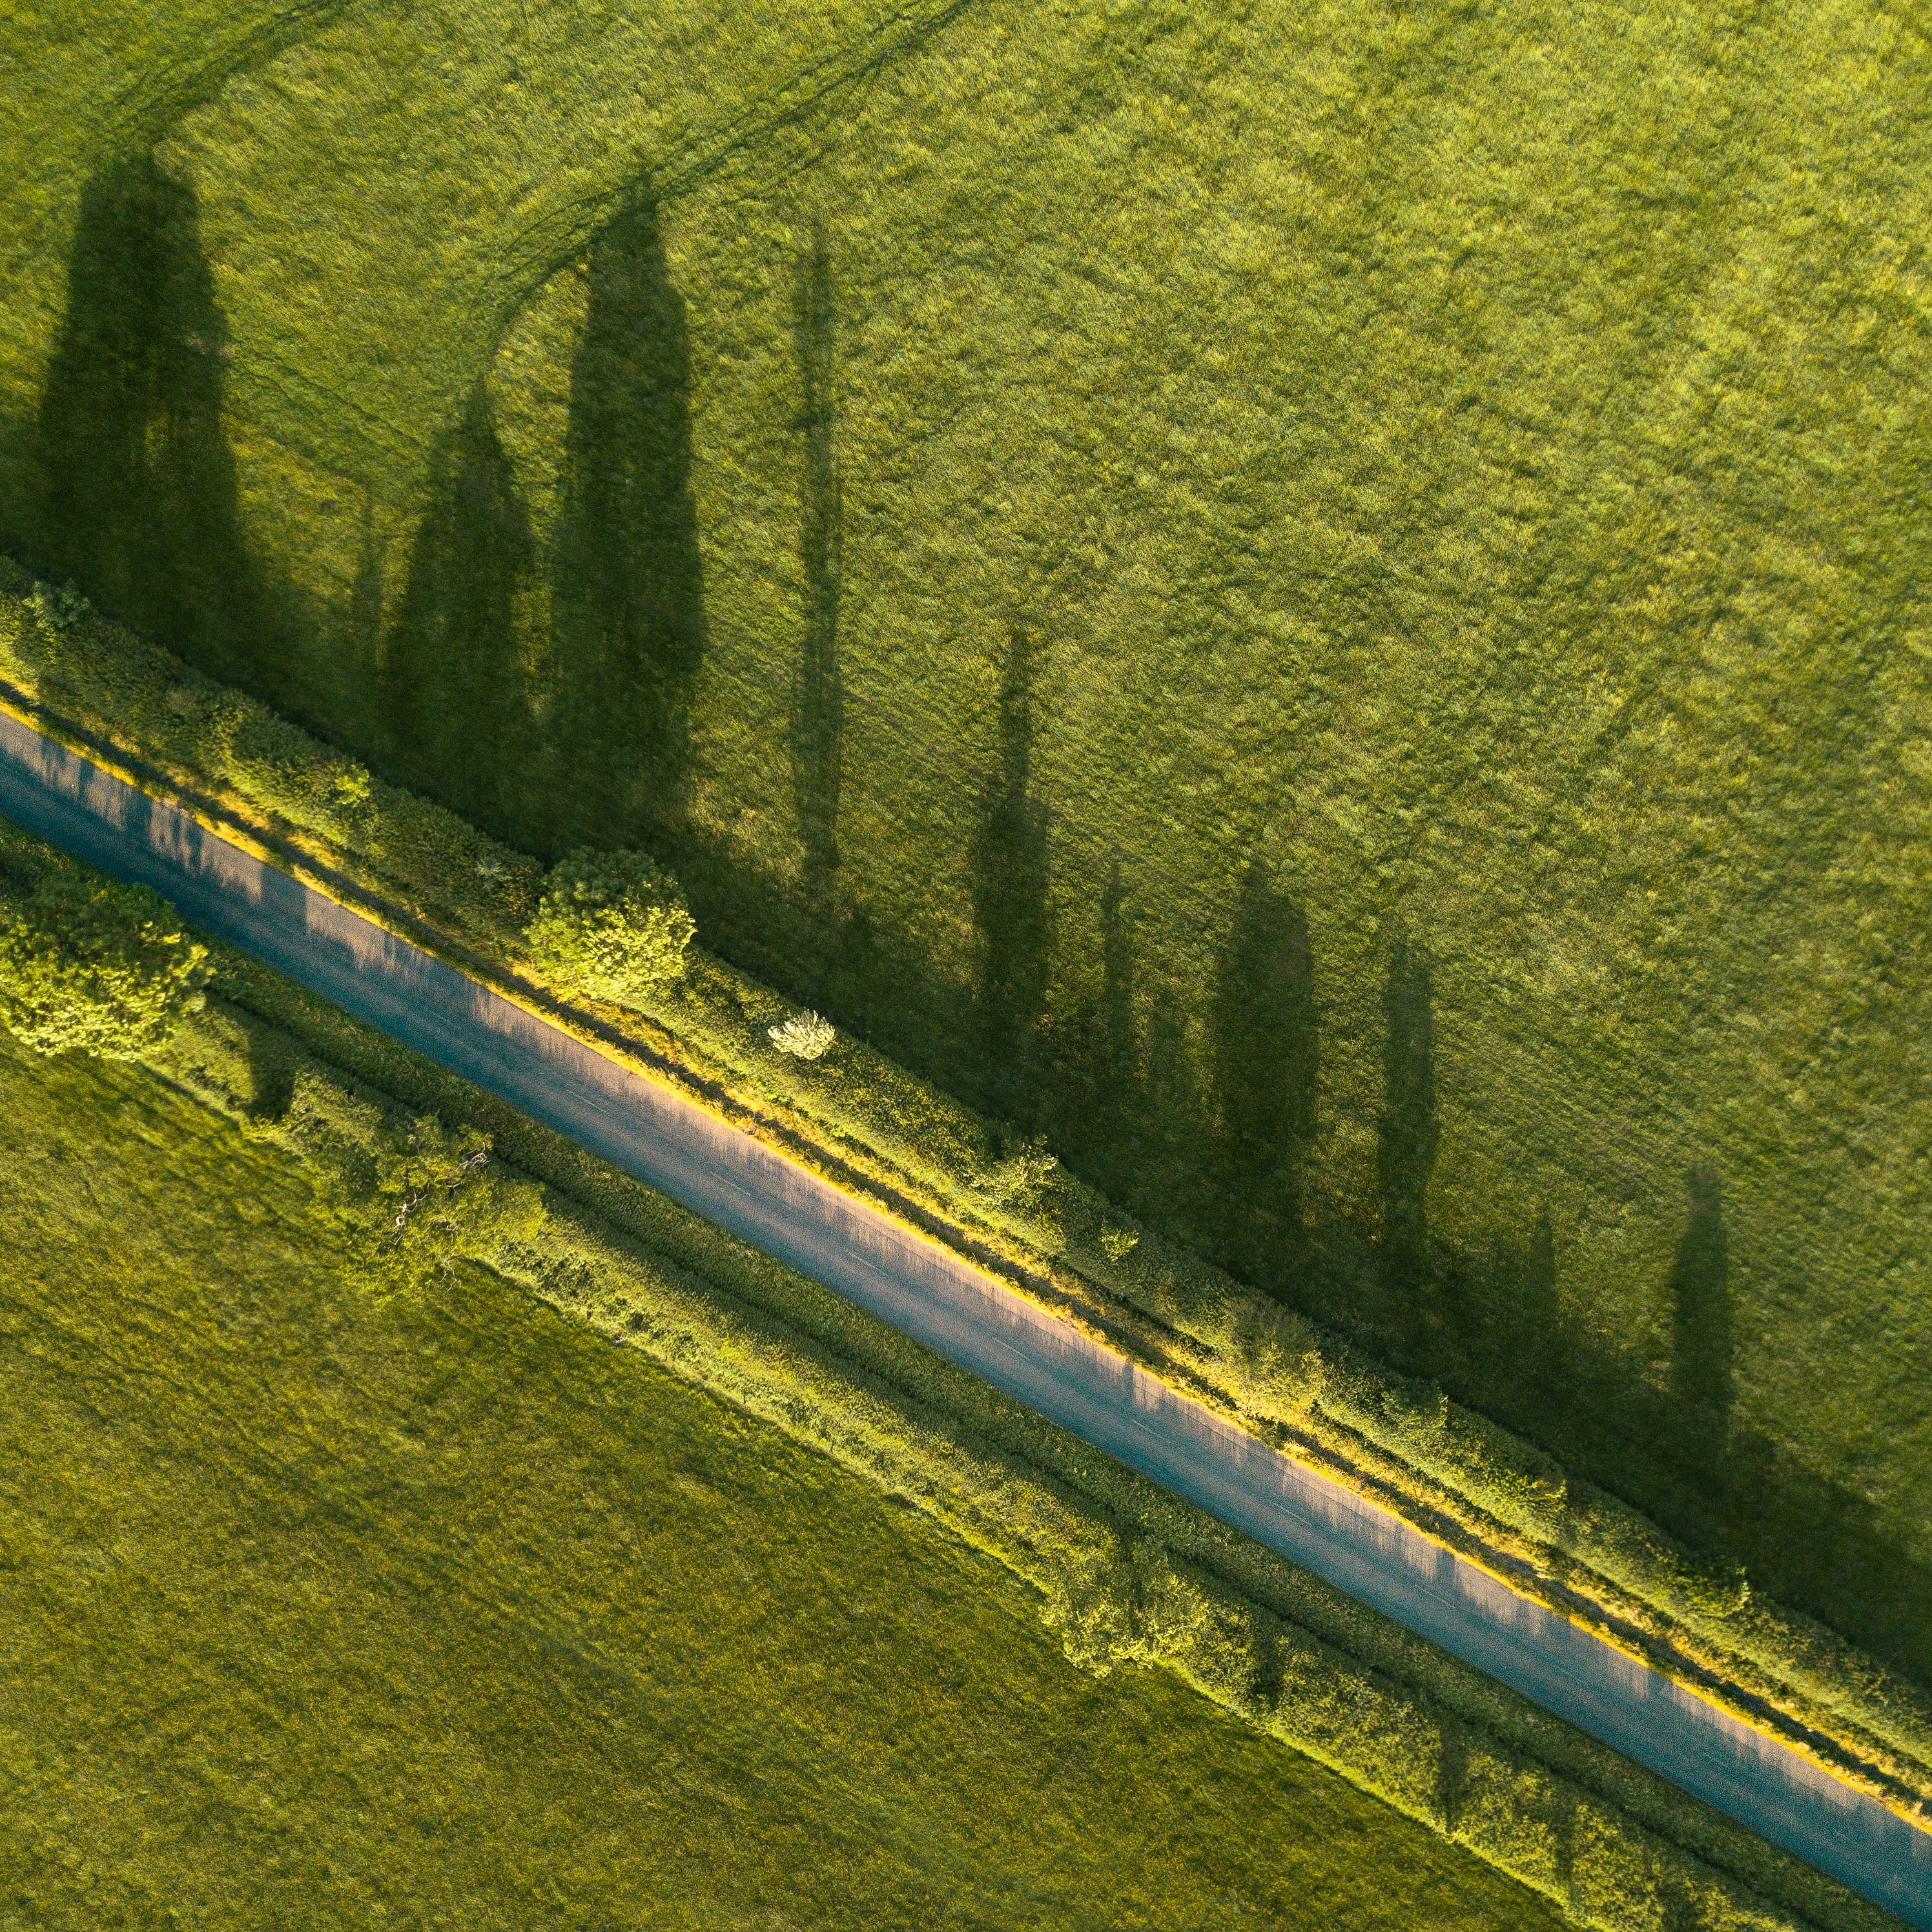 A drone shot of a rural road lined with hedges